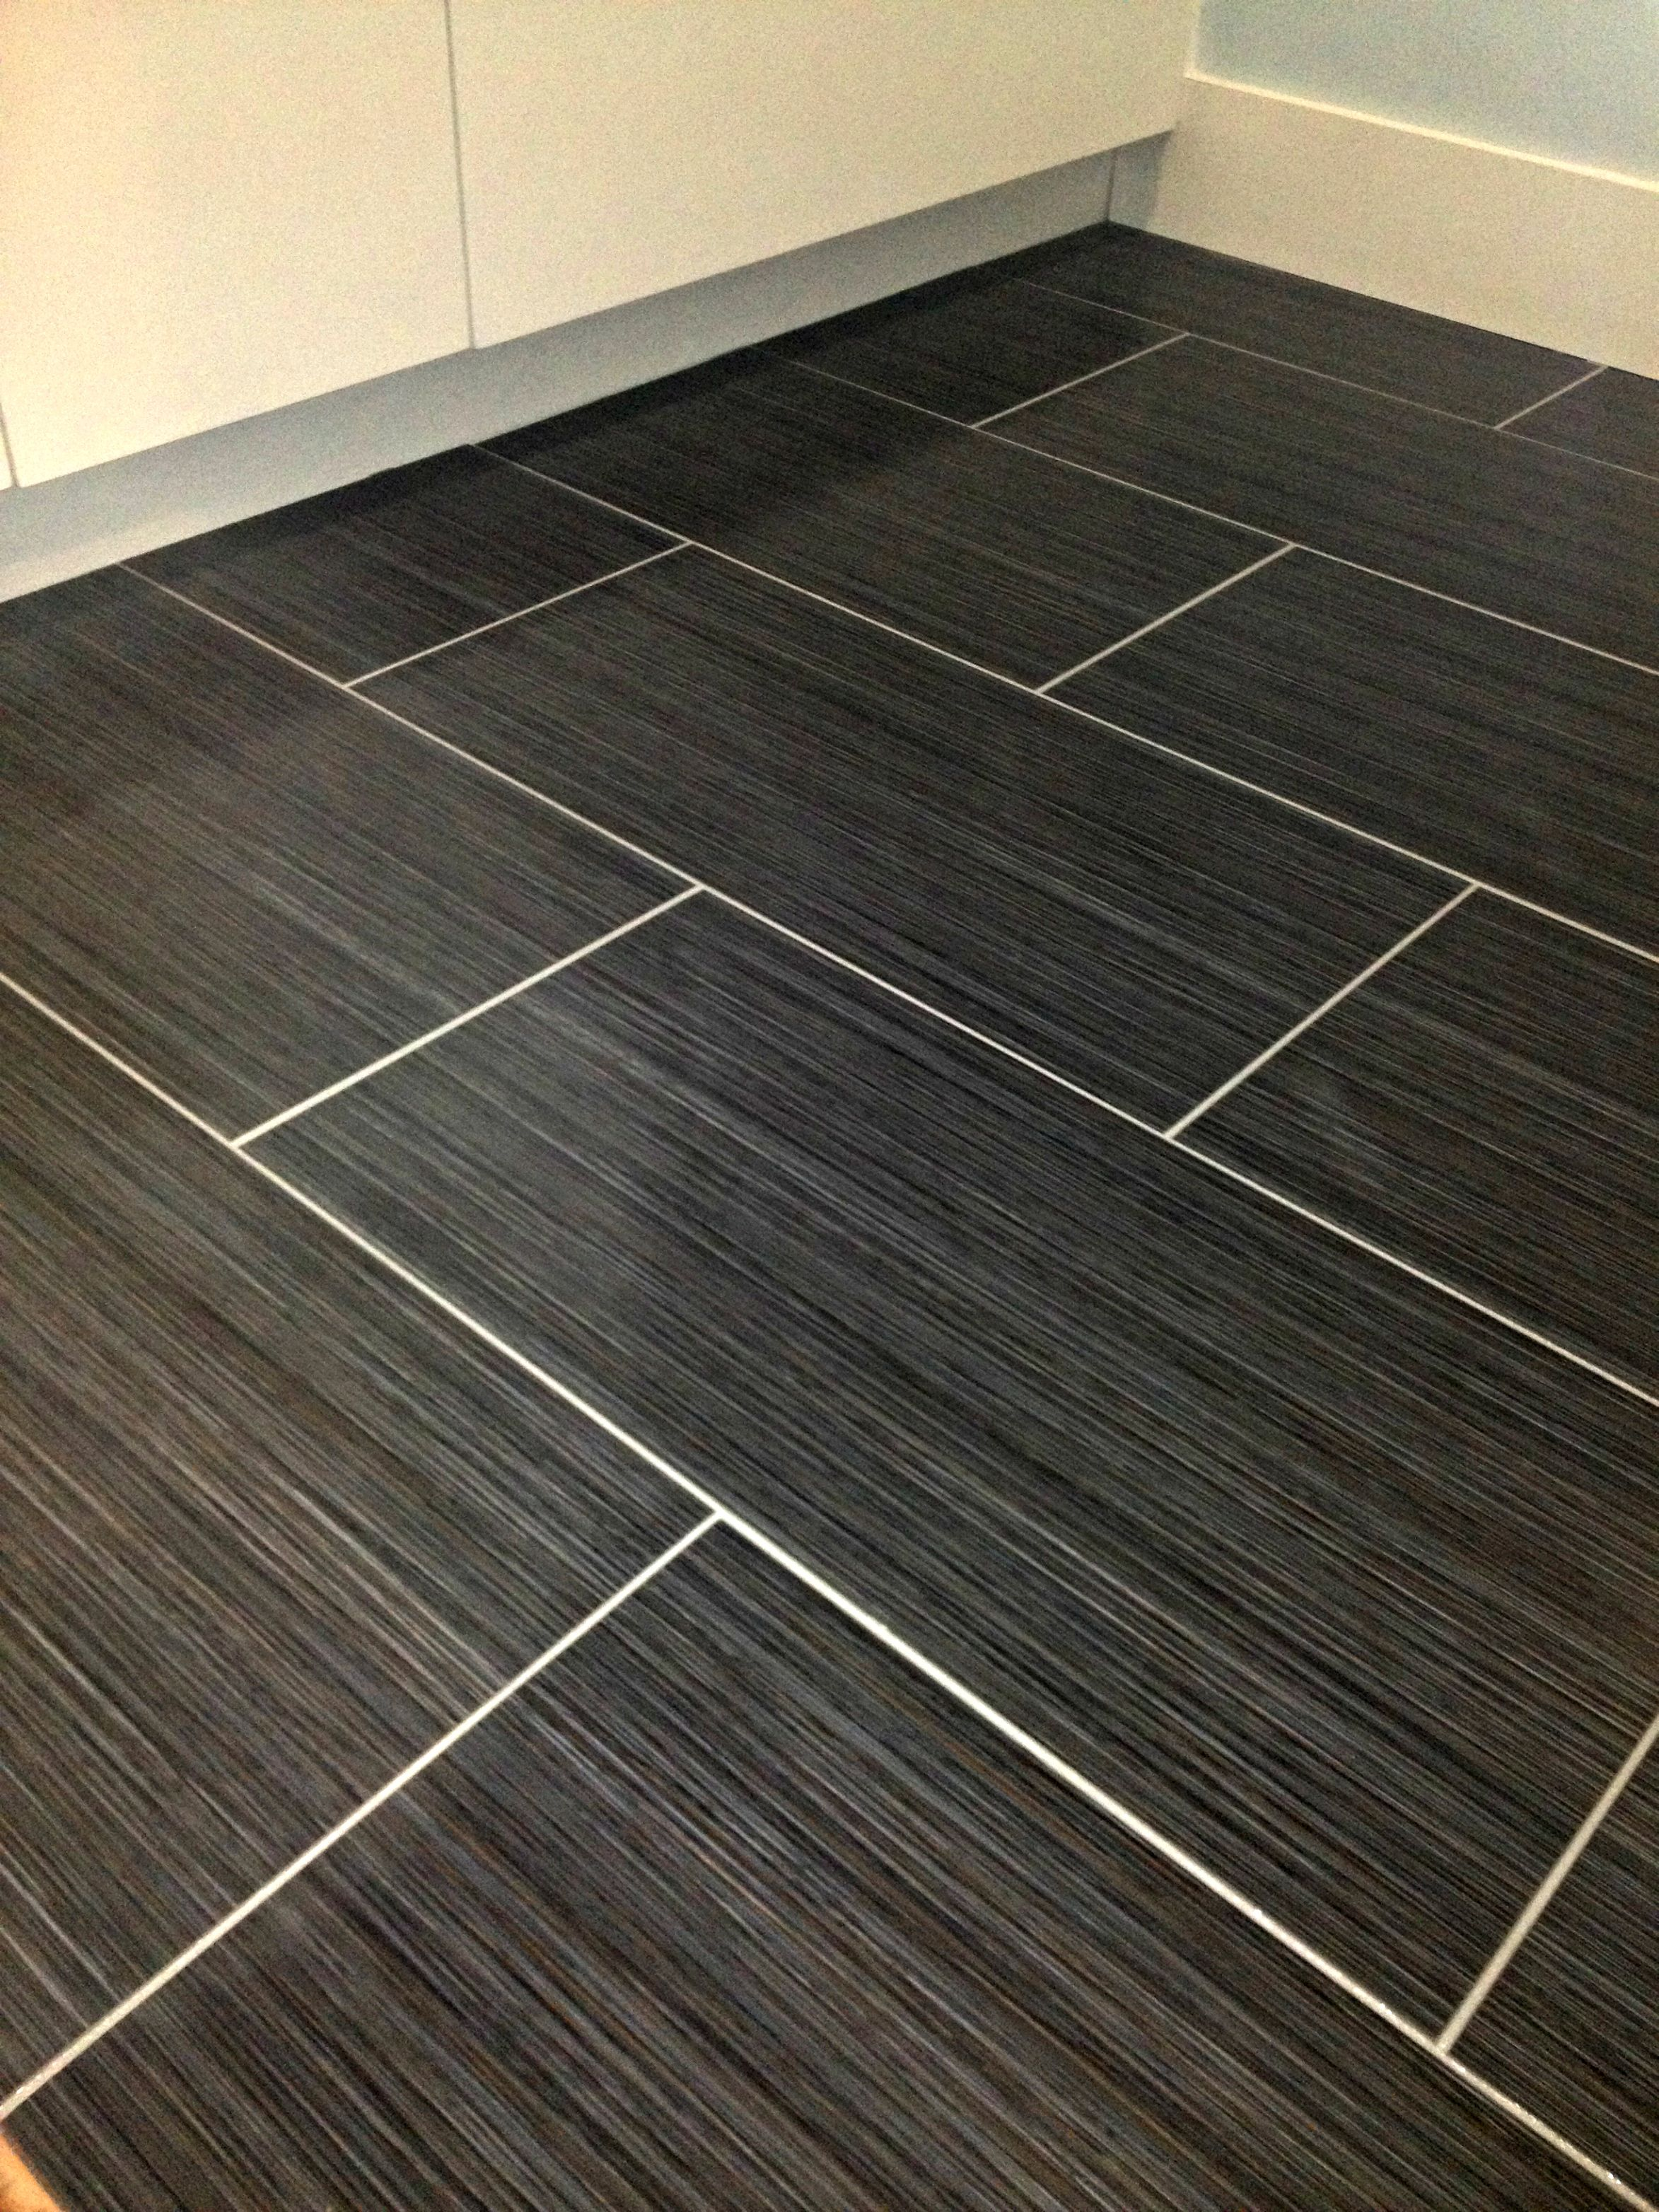 Floor With Dark Tile And Light Grout Tiles Flooring